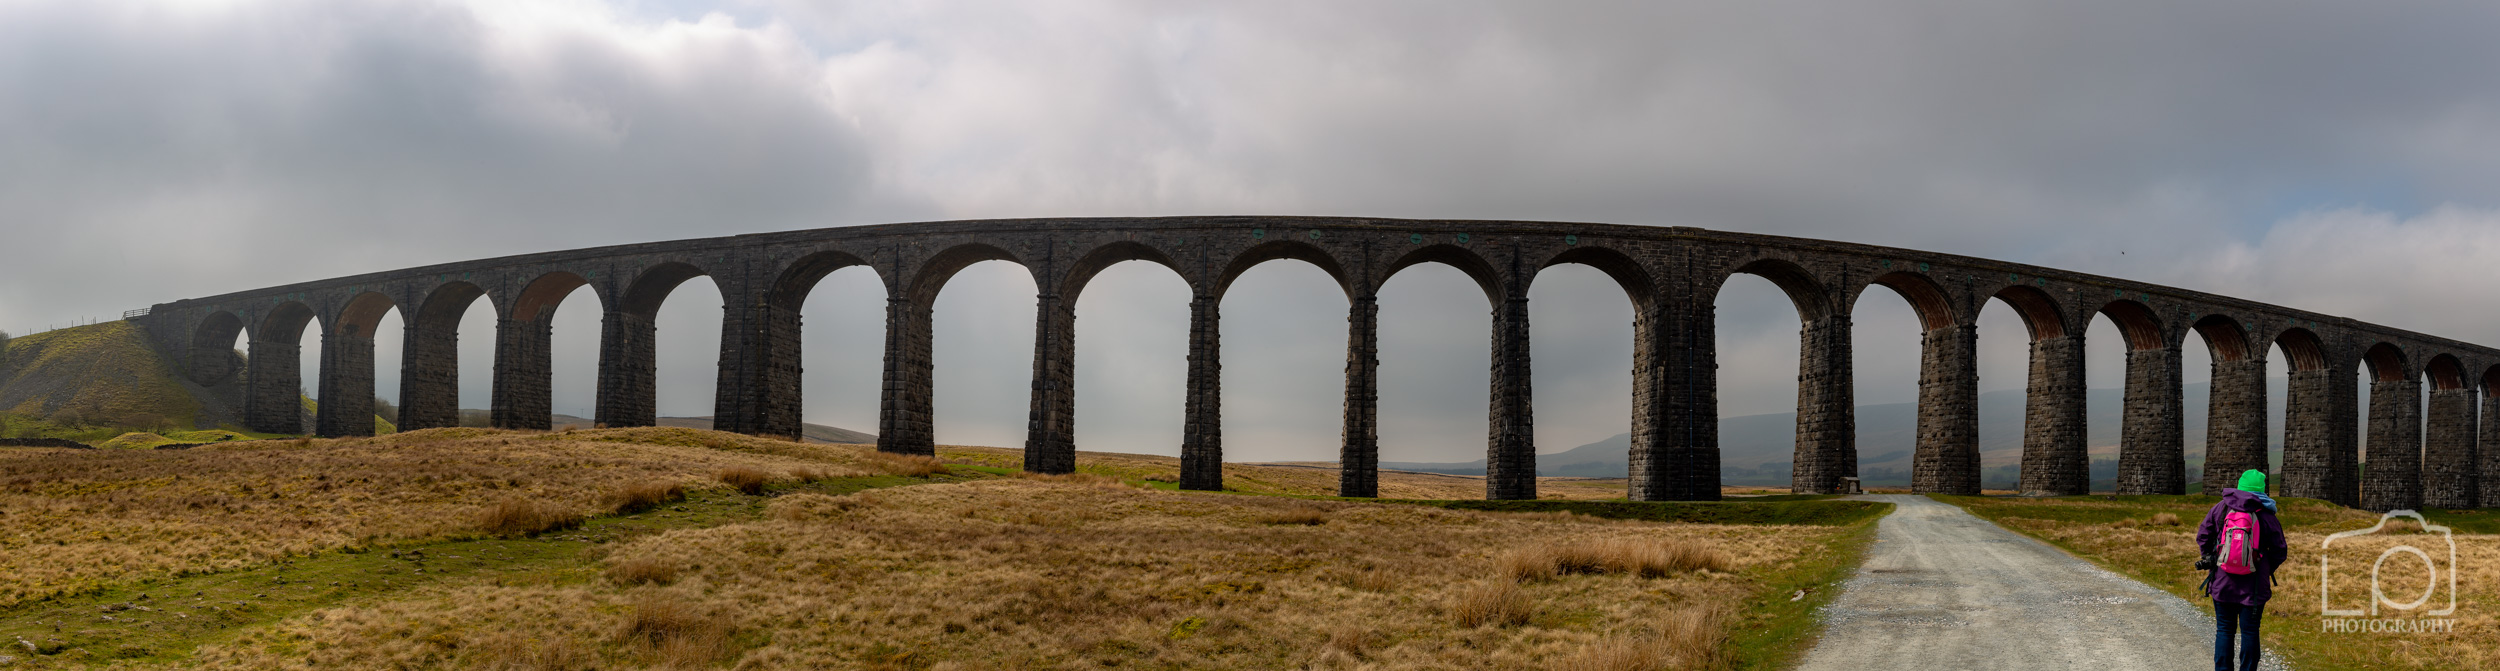 Yorkshire Dales-2966 Pano